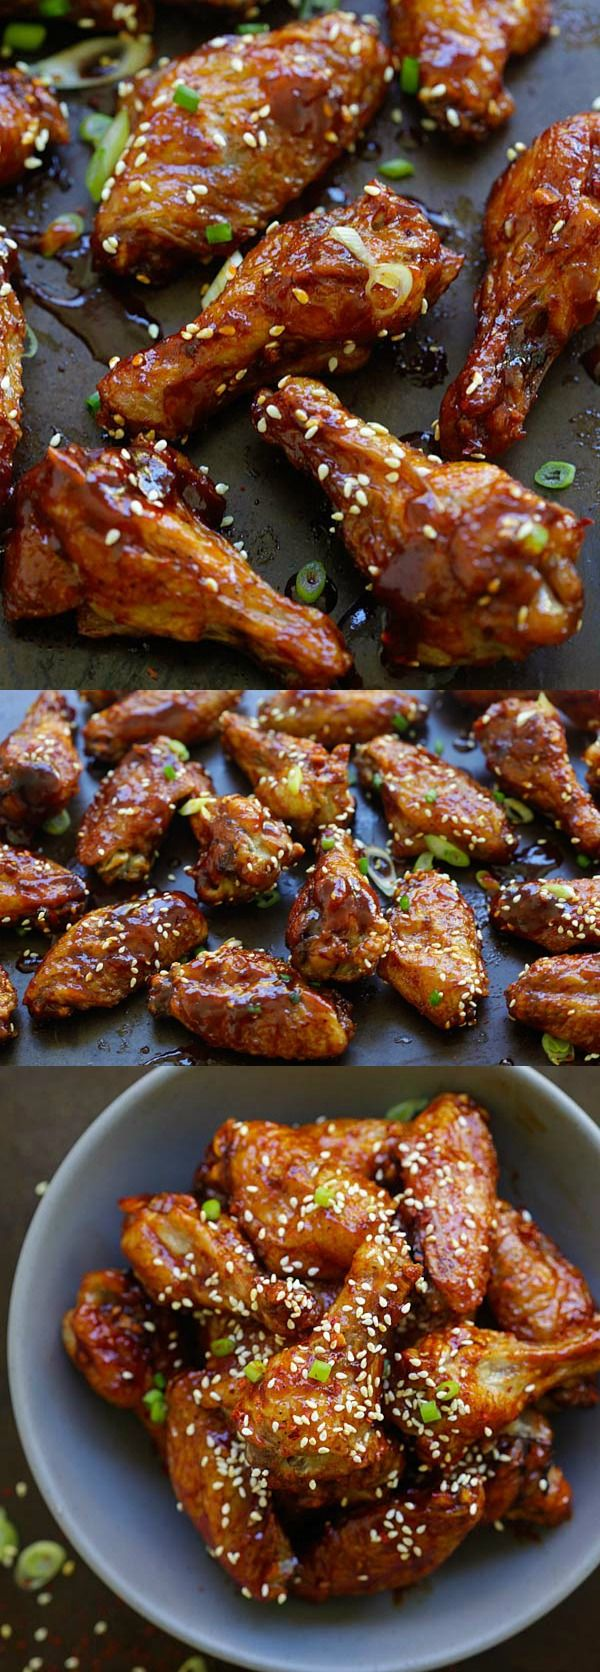 Spicy Korean Chicken Wings - sticky and addictive Korean chicken wings with sweet and savory Korean red pepper sauce. Finger lickin' good | rasamalaysia.com